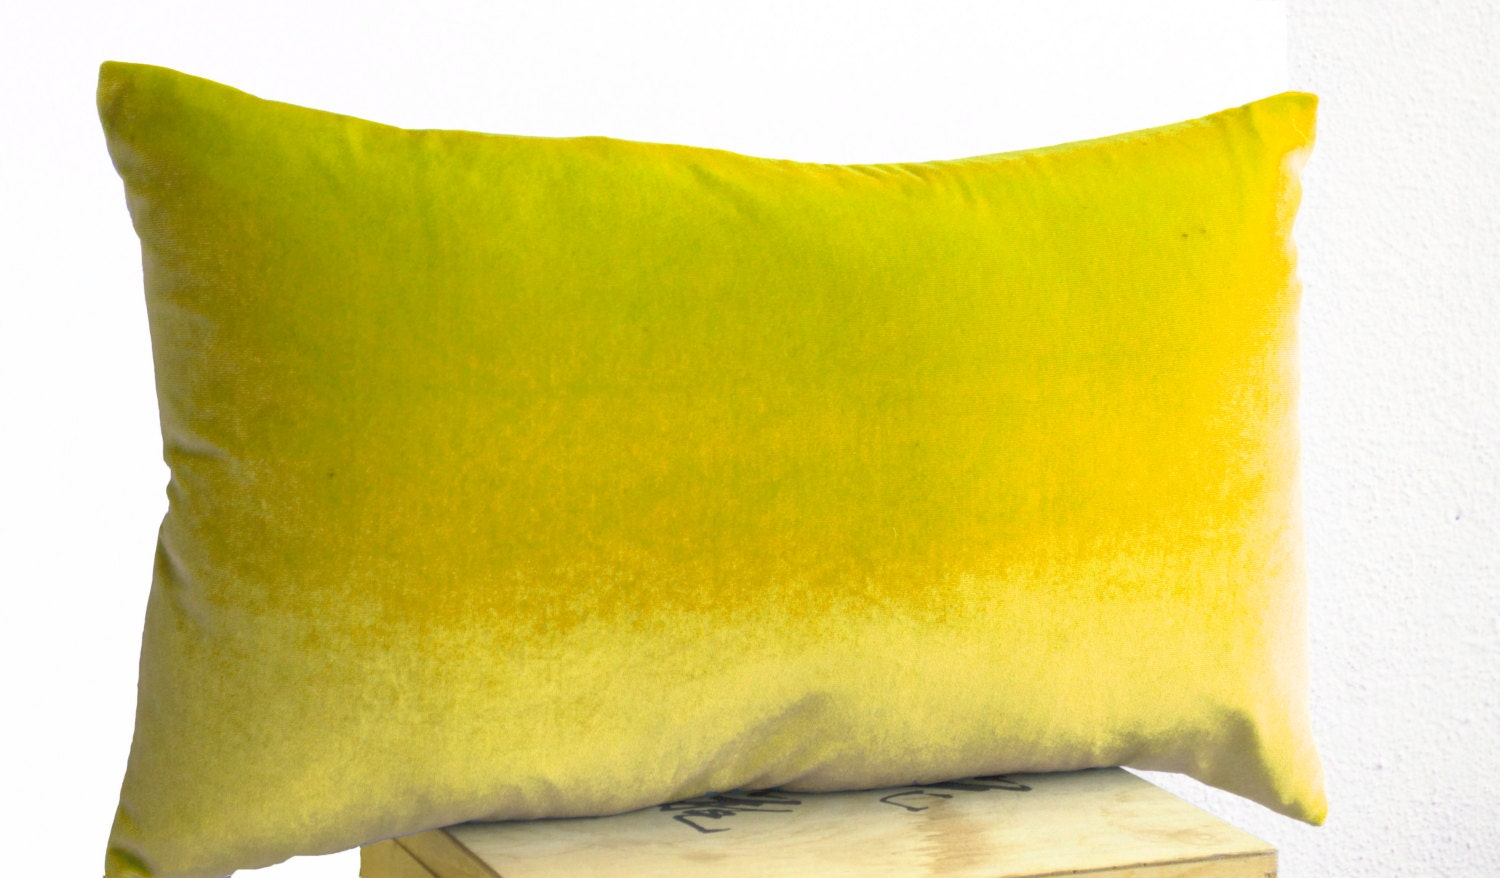 Yellow Sofa Pillows Best 25 Pillows For Sofa Ideas On